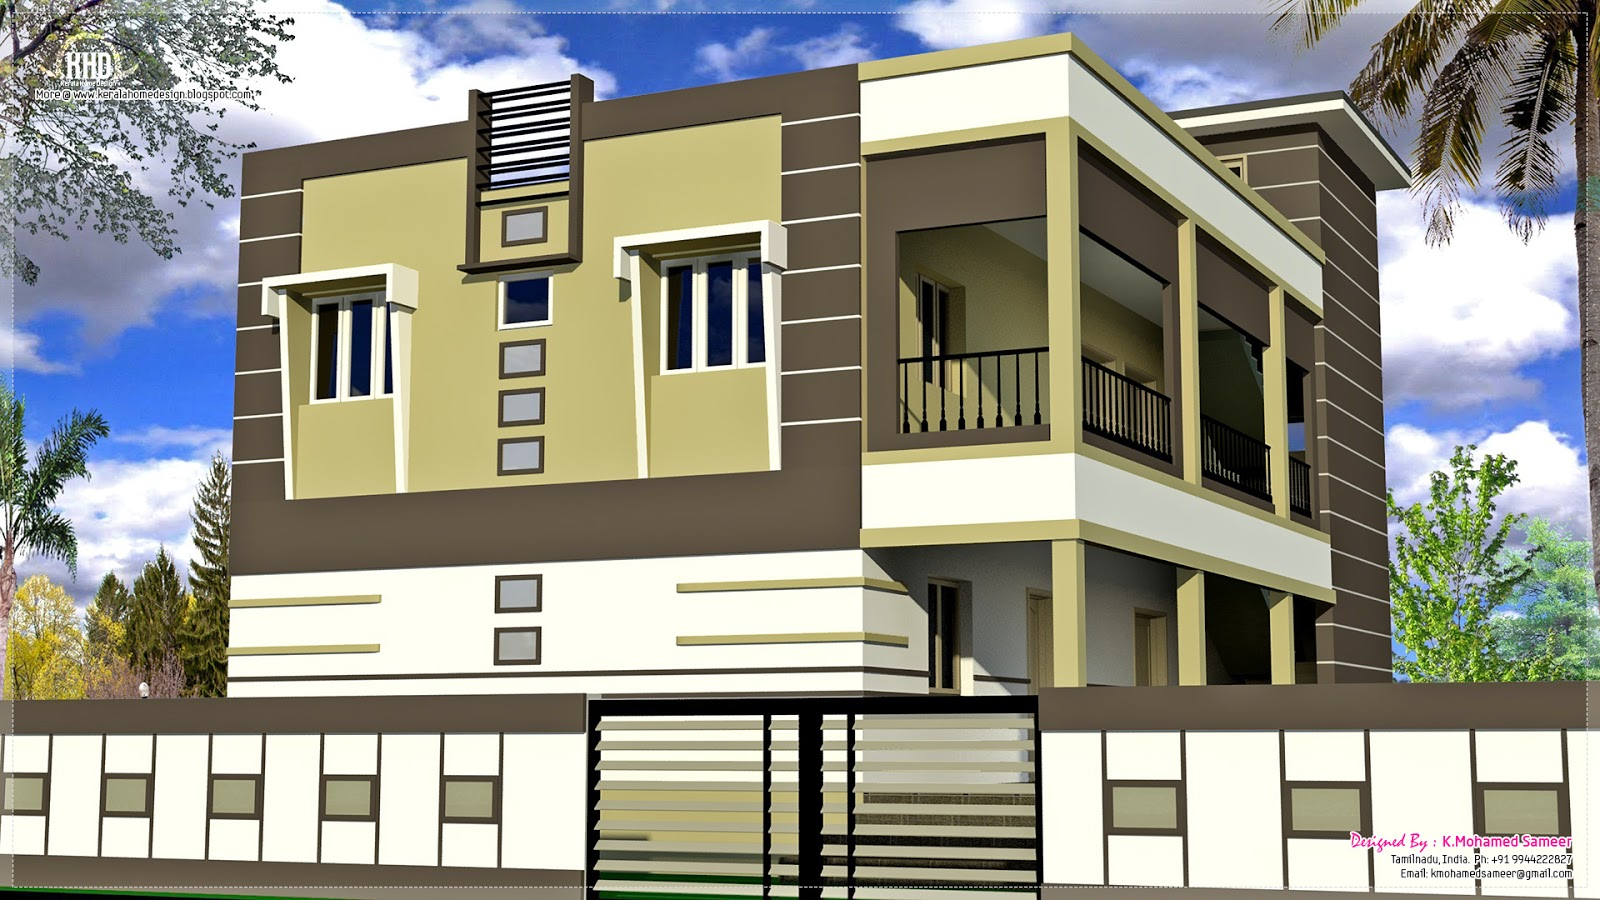 2 south indian house exterior designs home kerala plans for South indian small house designs